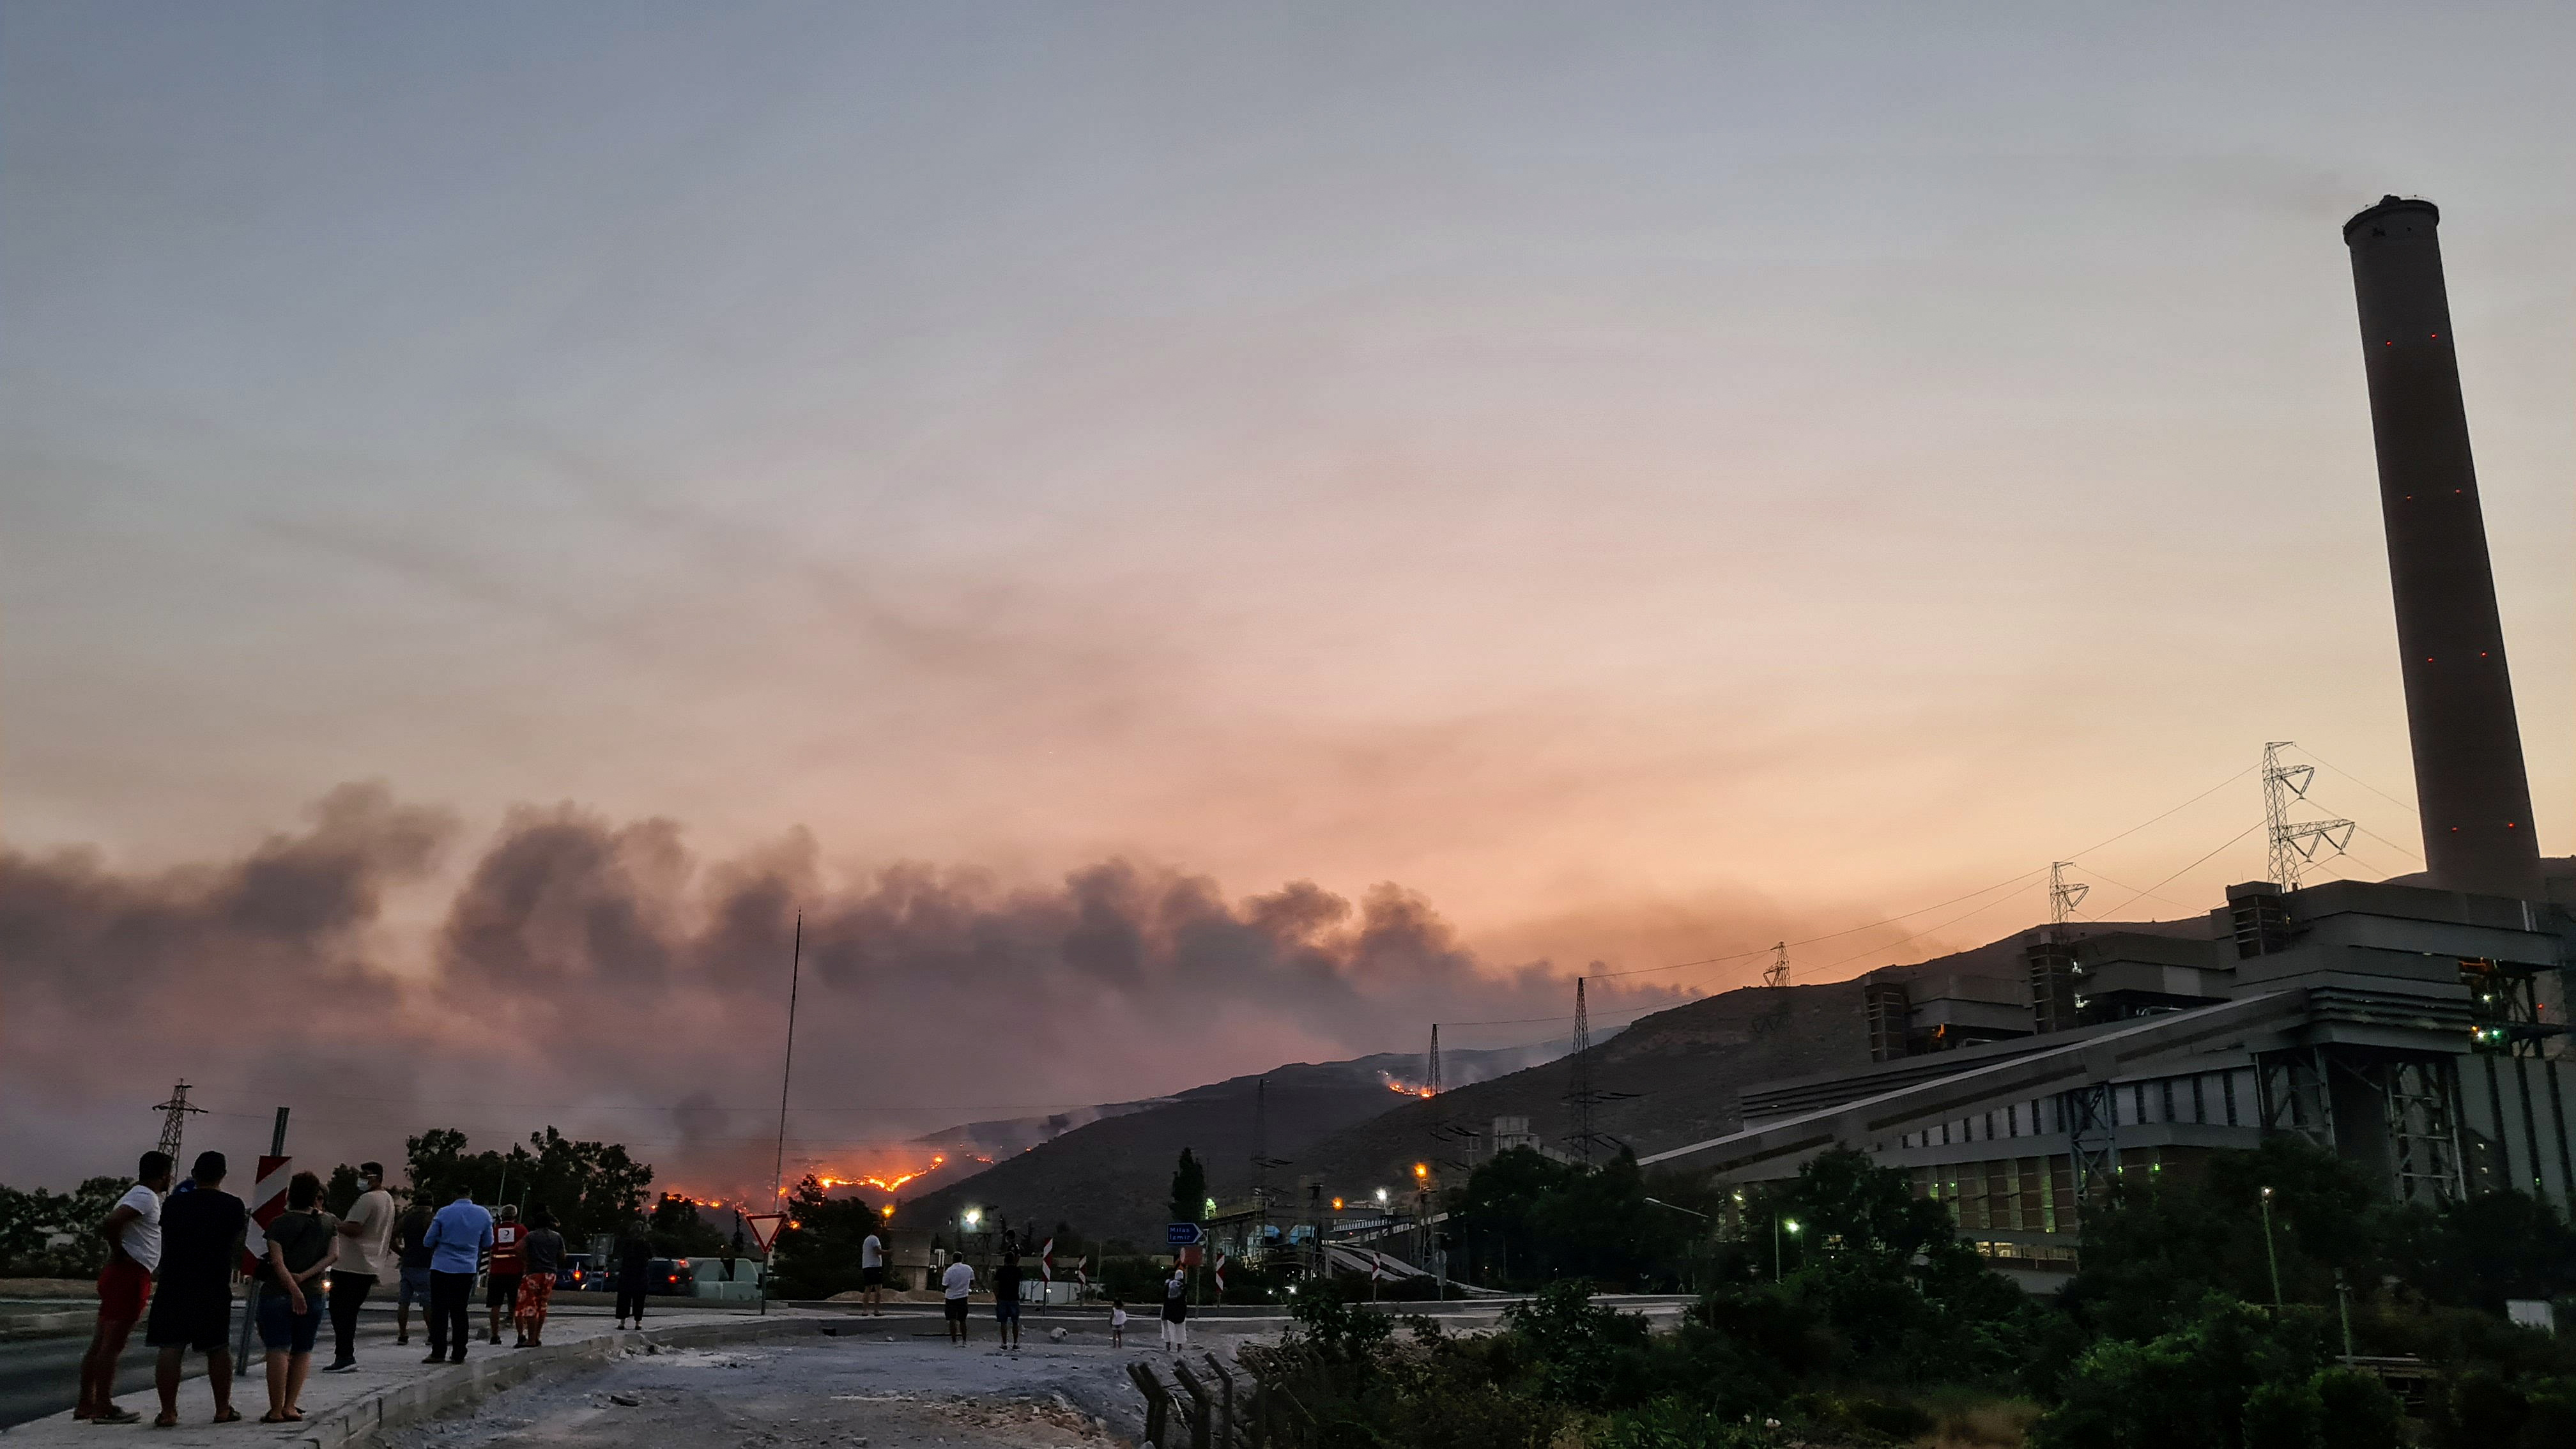 Flames and smoke fill the sky as residents watch the wildfire next to a thermal power station near Cokertme, a village in Bodrum region, Turkey, August 3, 2021. REUTERS/Kenan Gurbuz